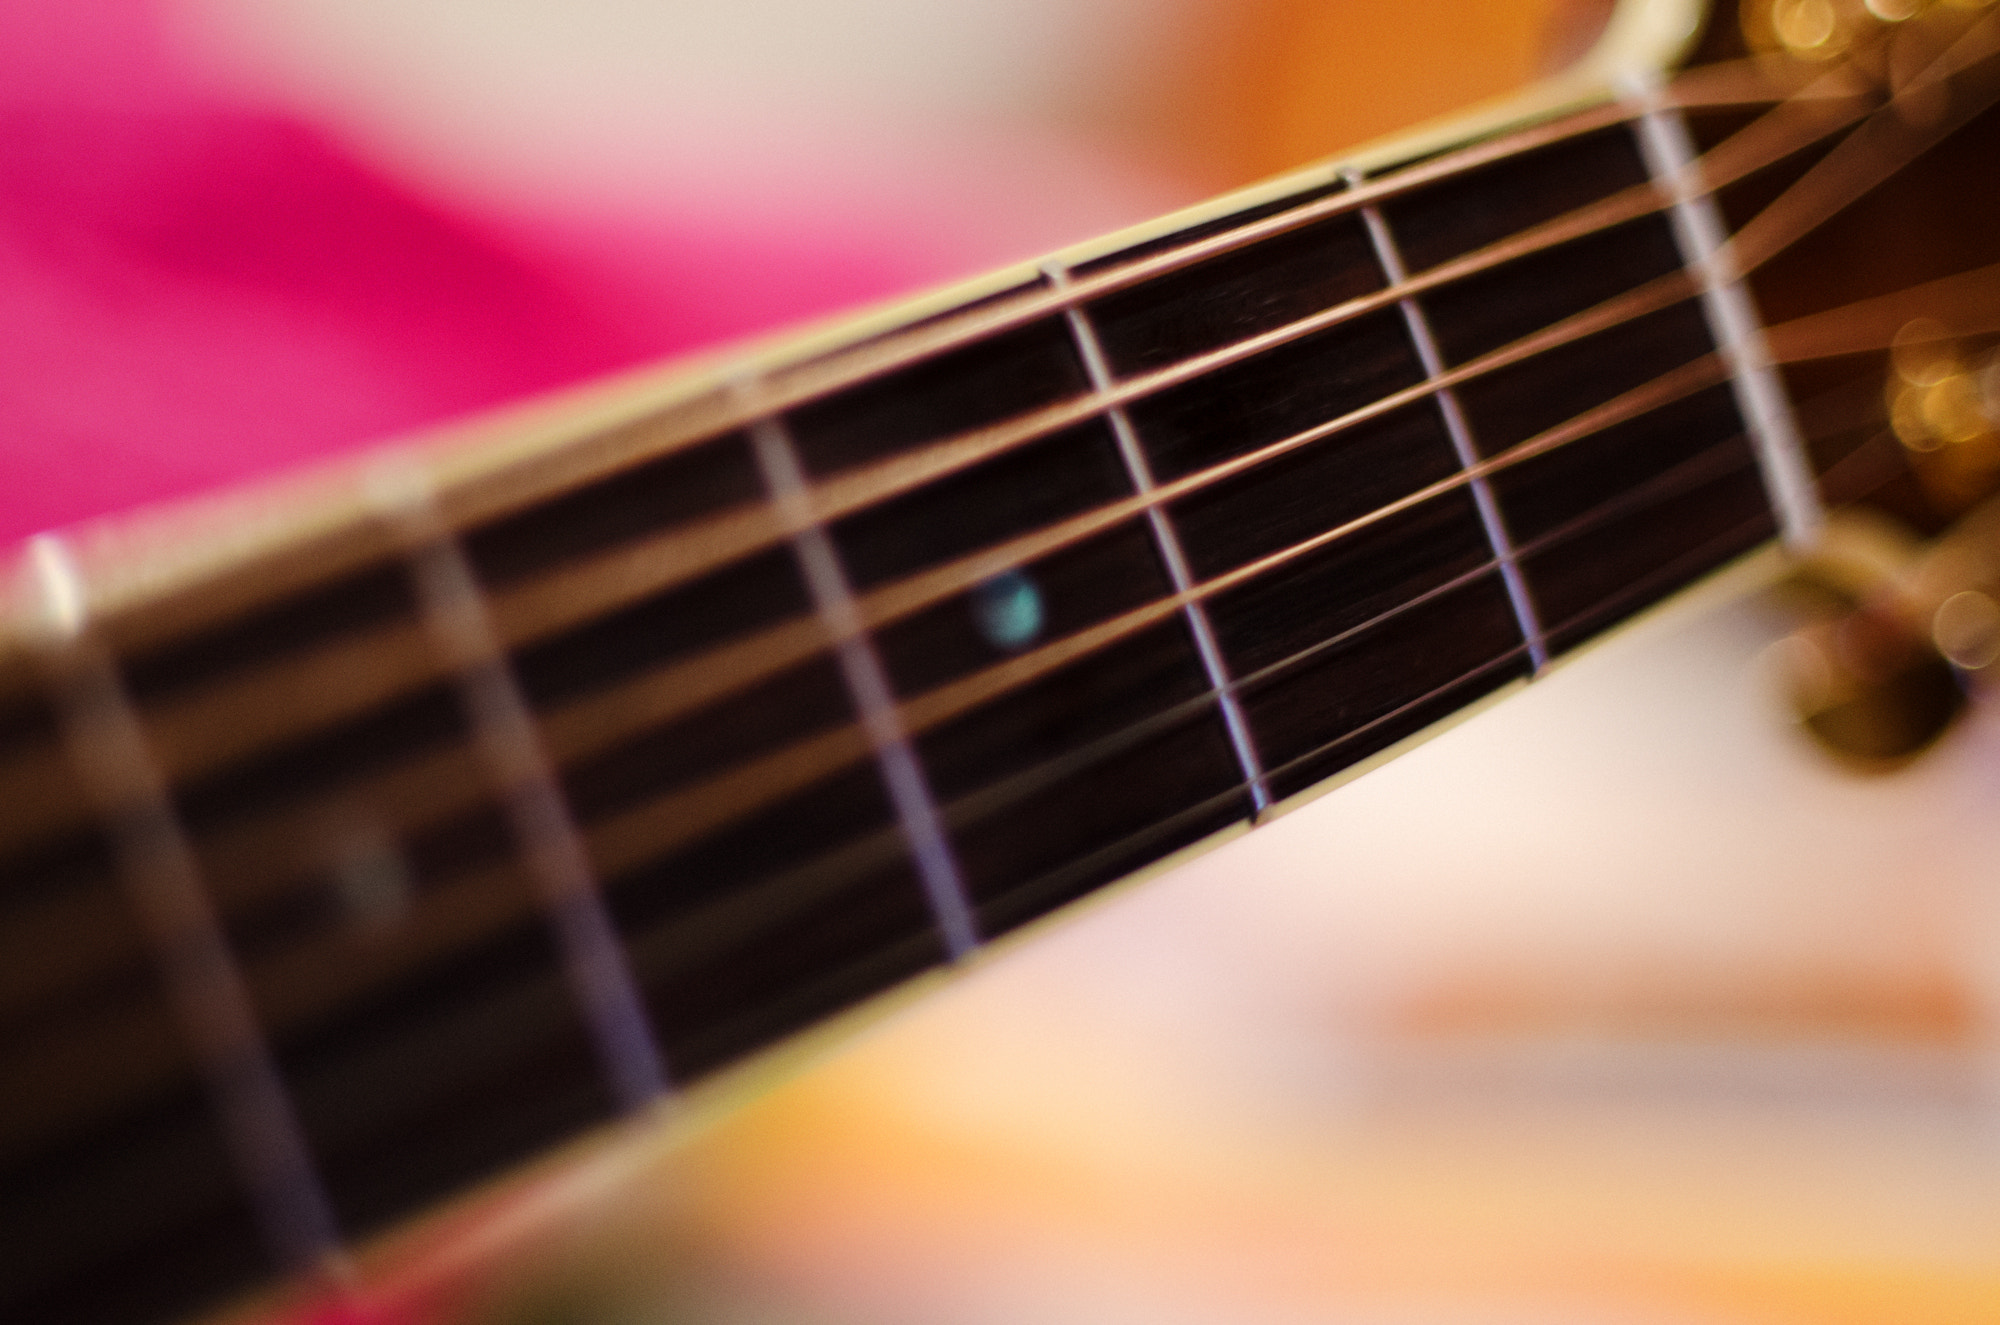 Photograph Guitar Strings by Yousef Abdul Husain on 500px